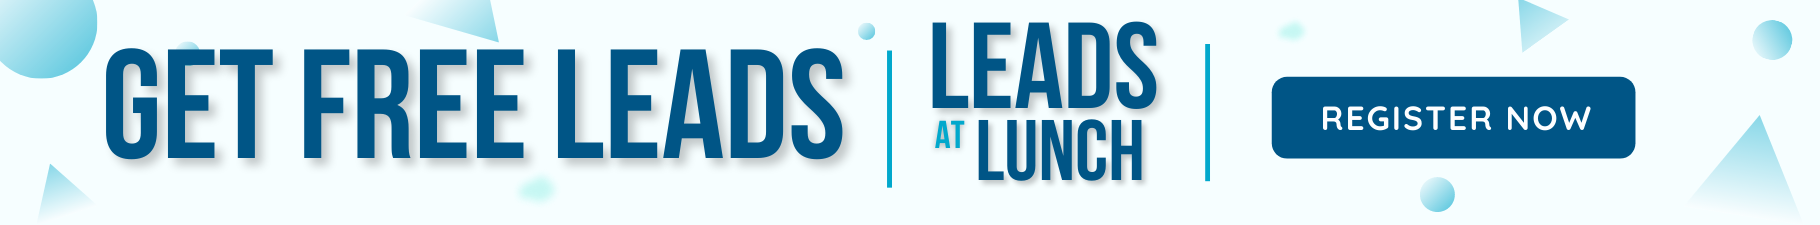 free-leads-ad-leads-at-lunch